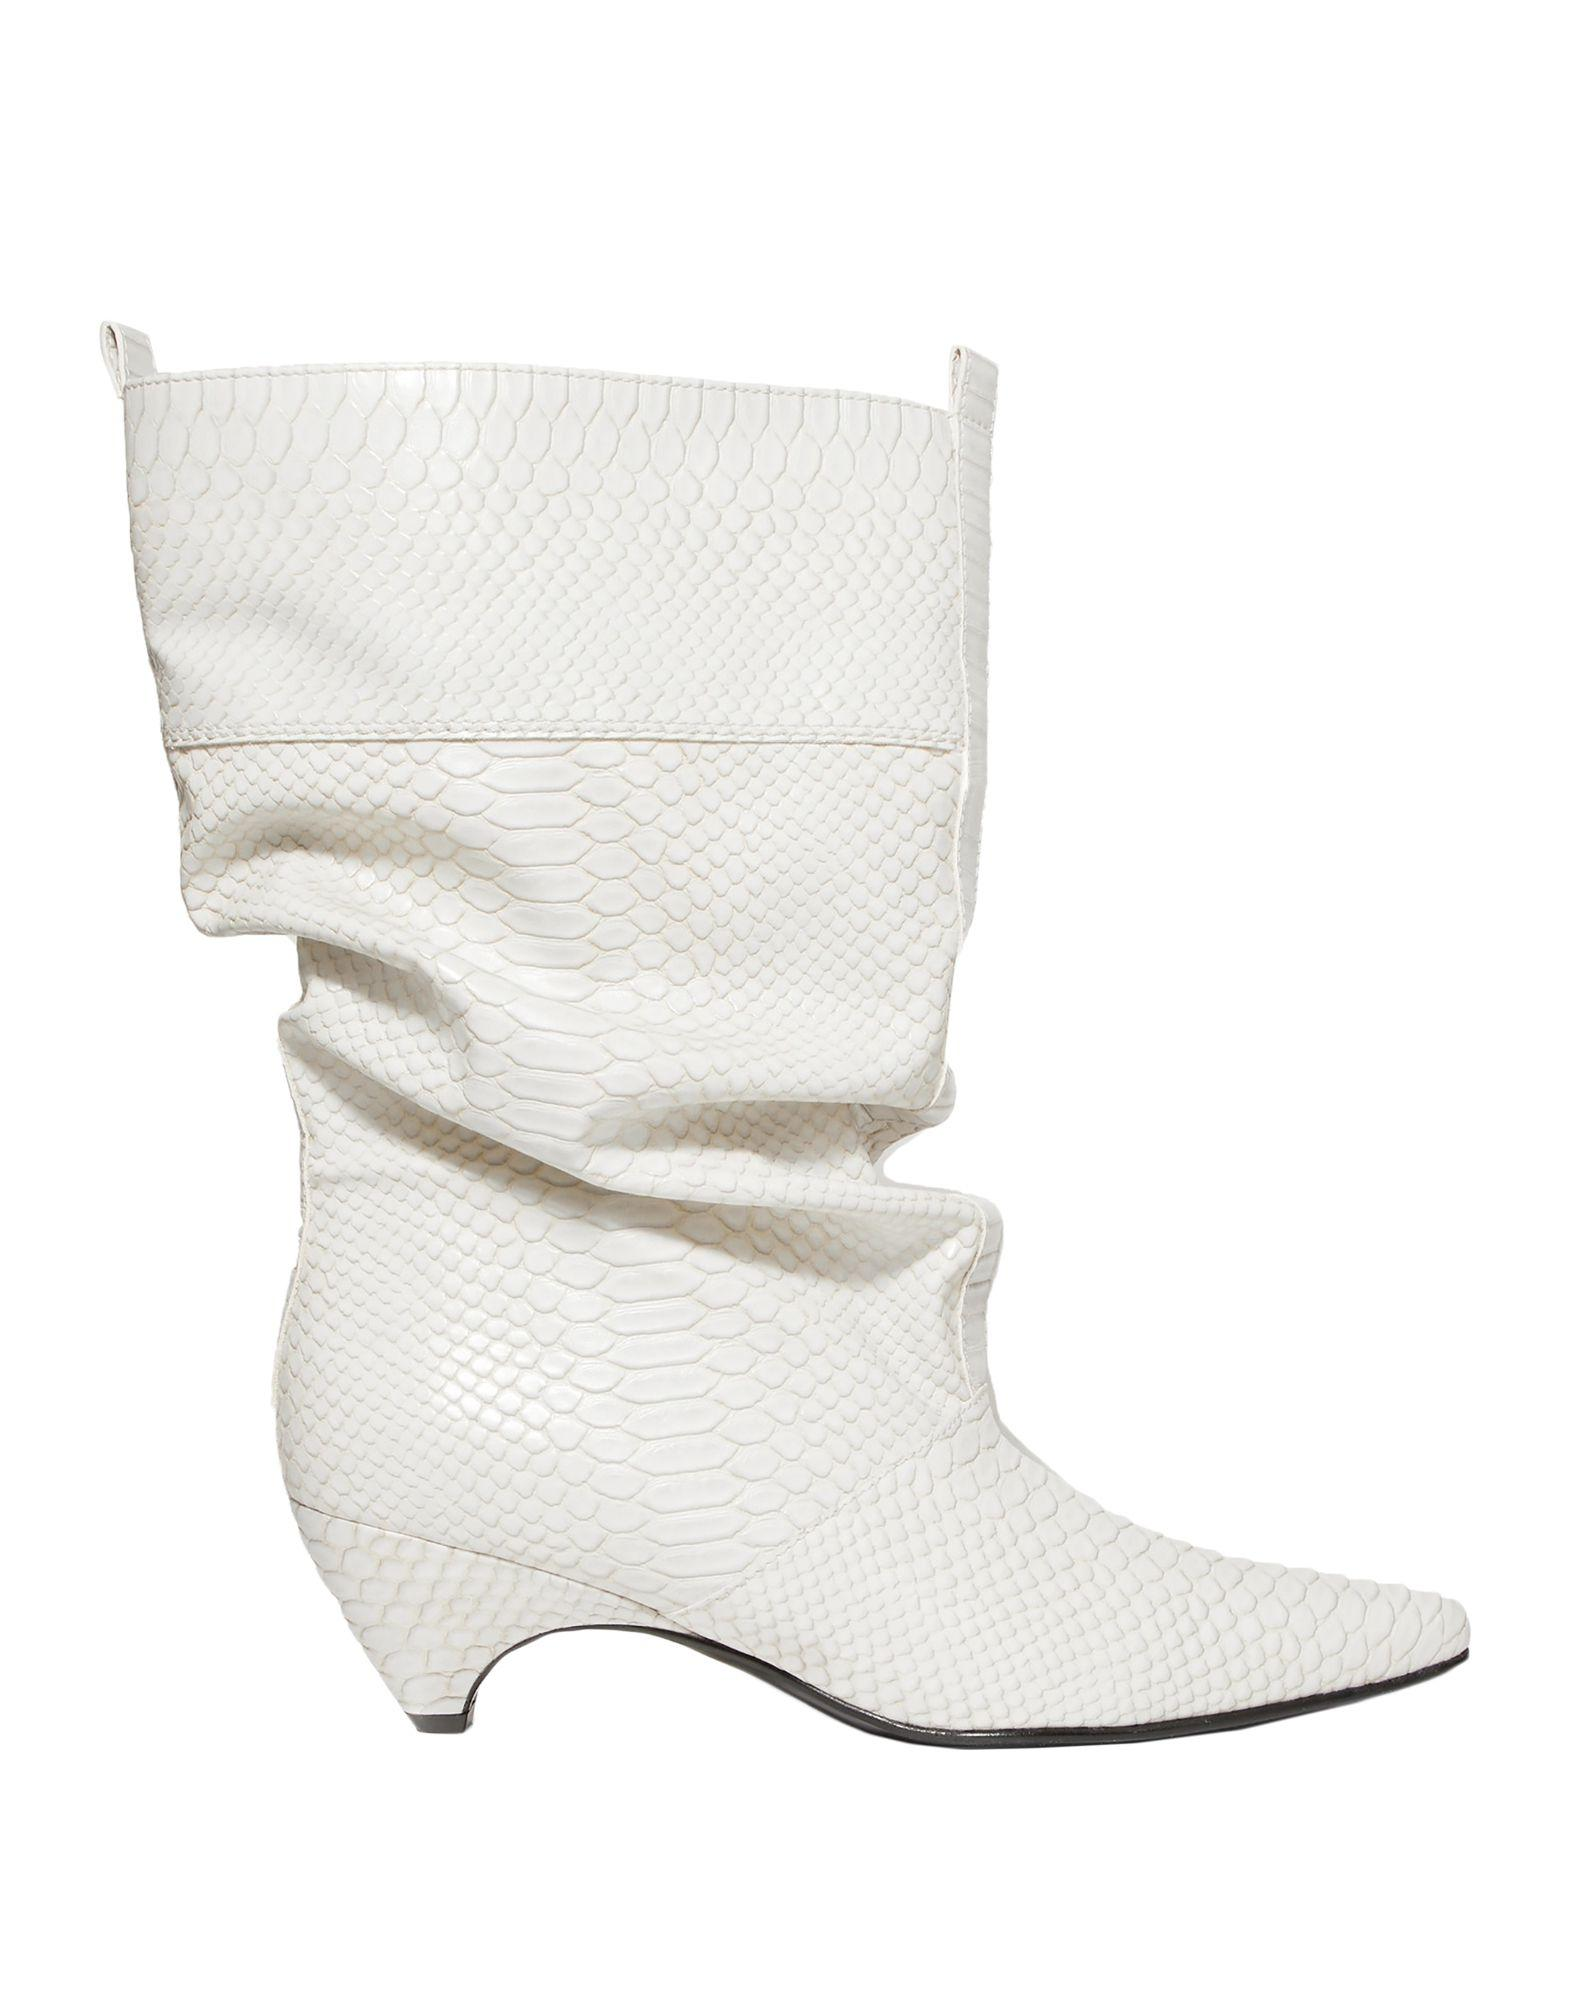 e532e6f6ddf Lyst - Stella McCartney Ankle Boots in White